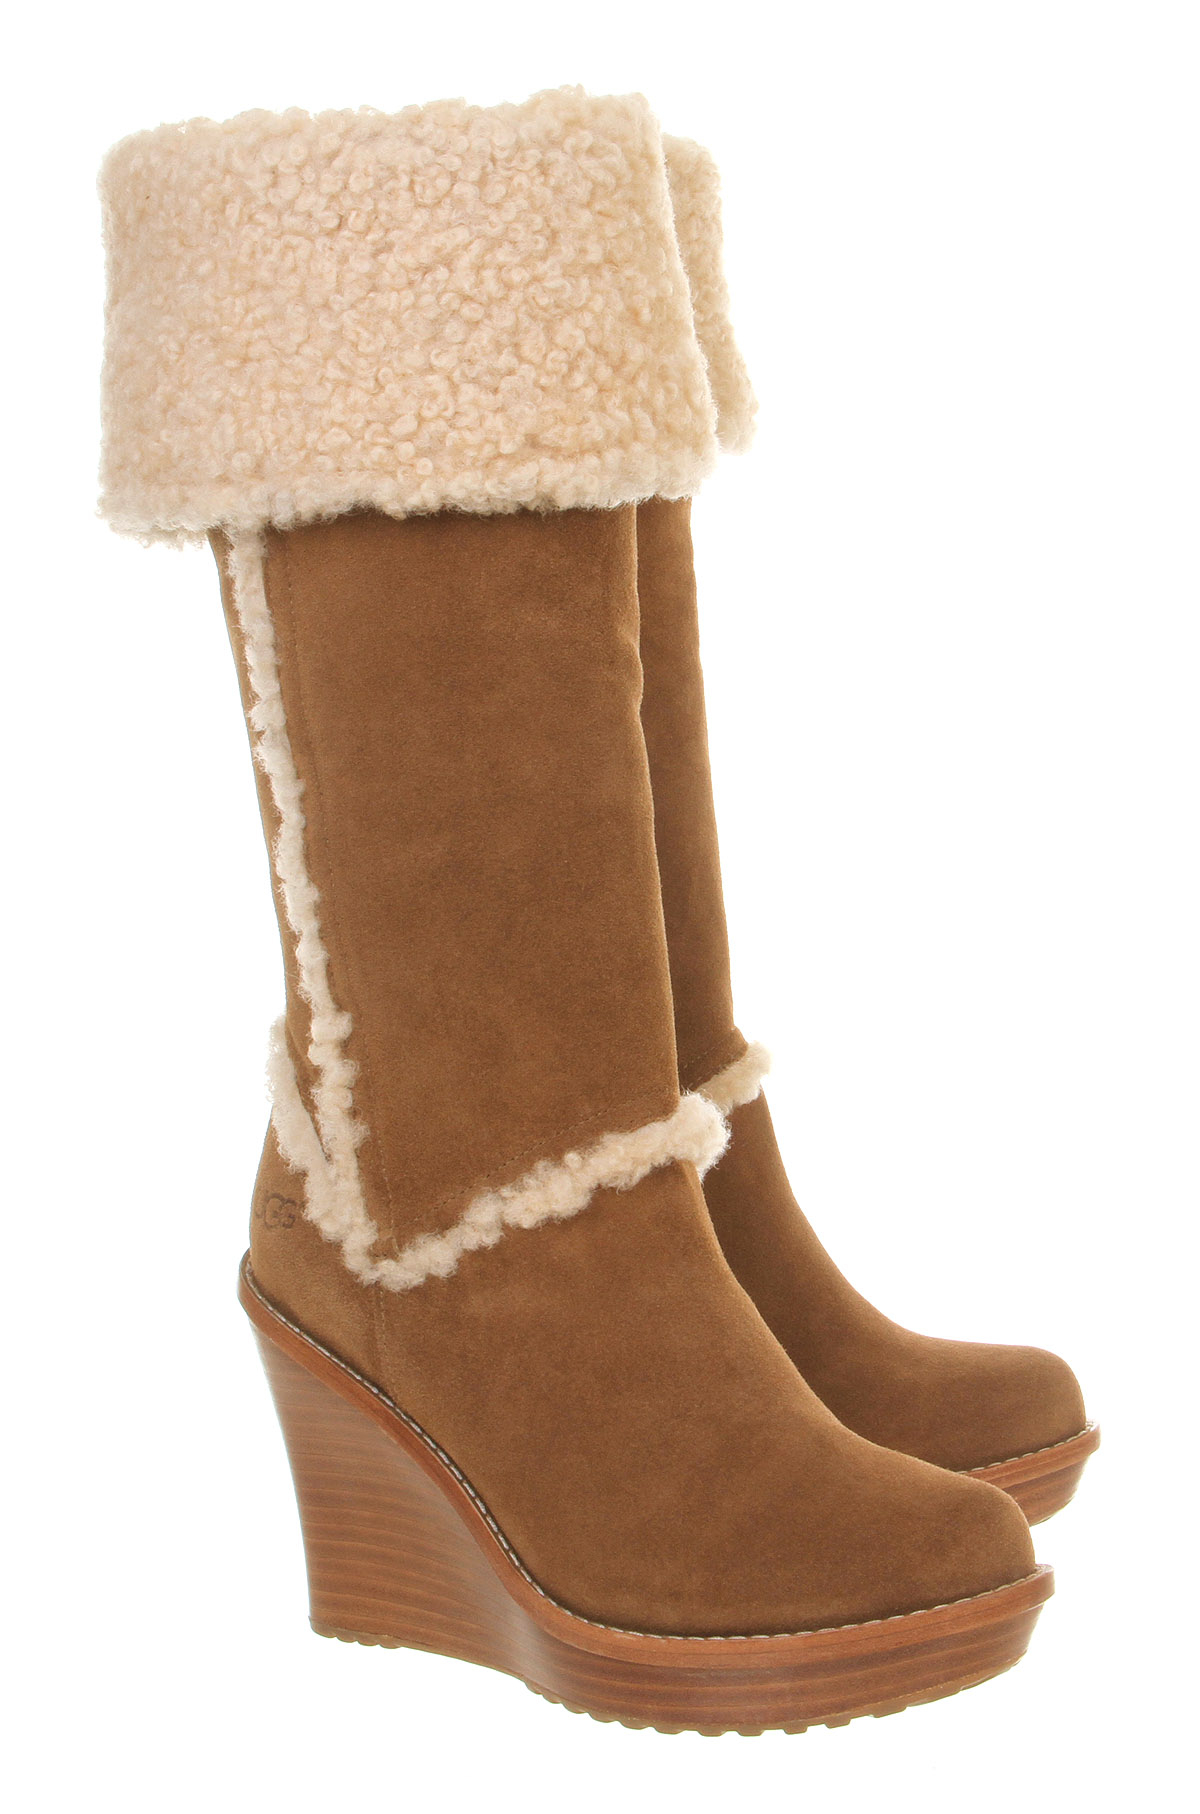 womens ugg boots wedge heel